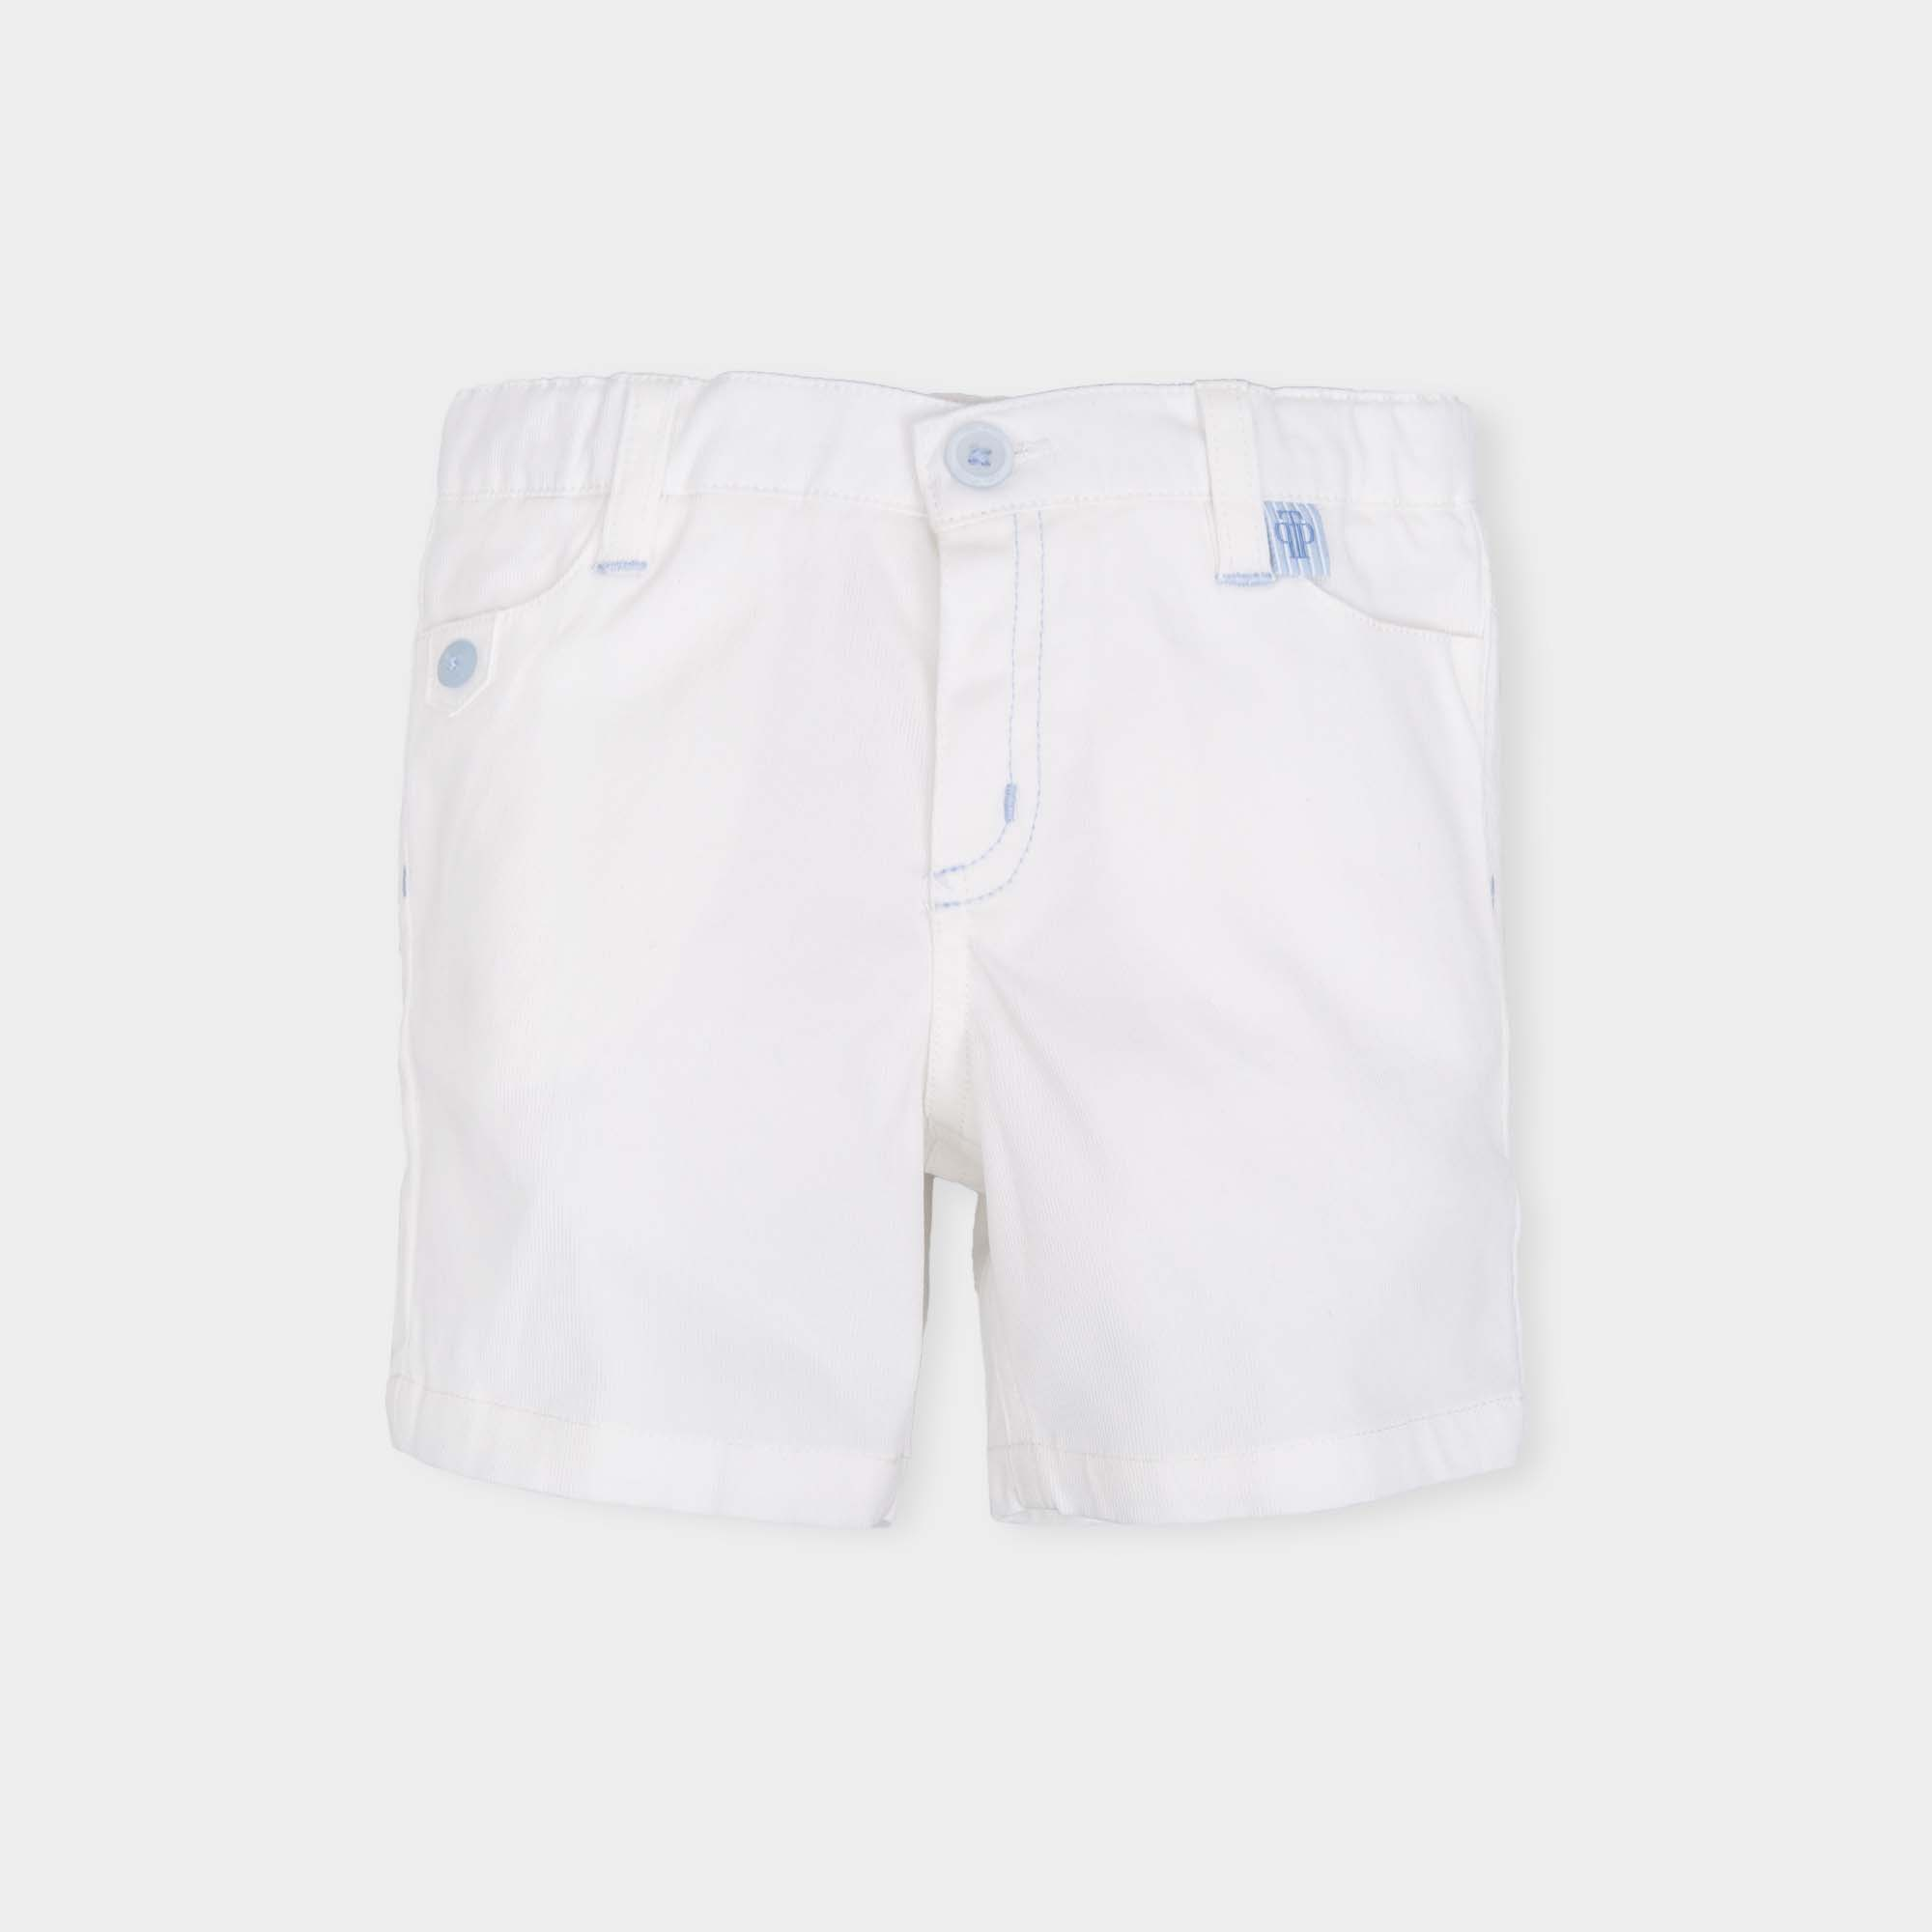 7925511088d8 TUTTO PICCOLO BOYS WHITE SHORTS REF.: 6317 - masielbebe.co.uk